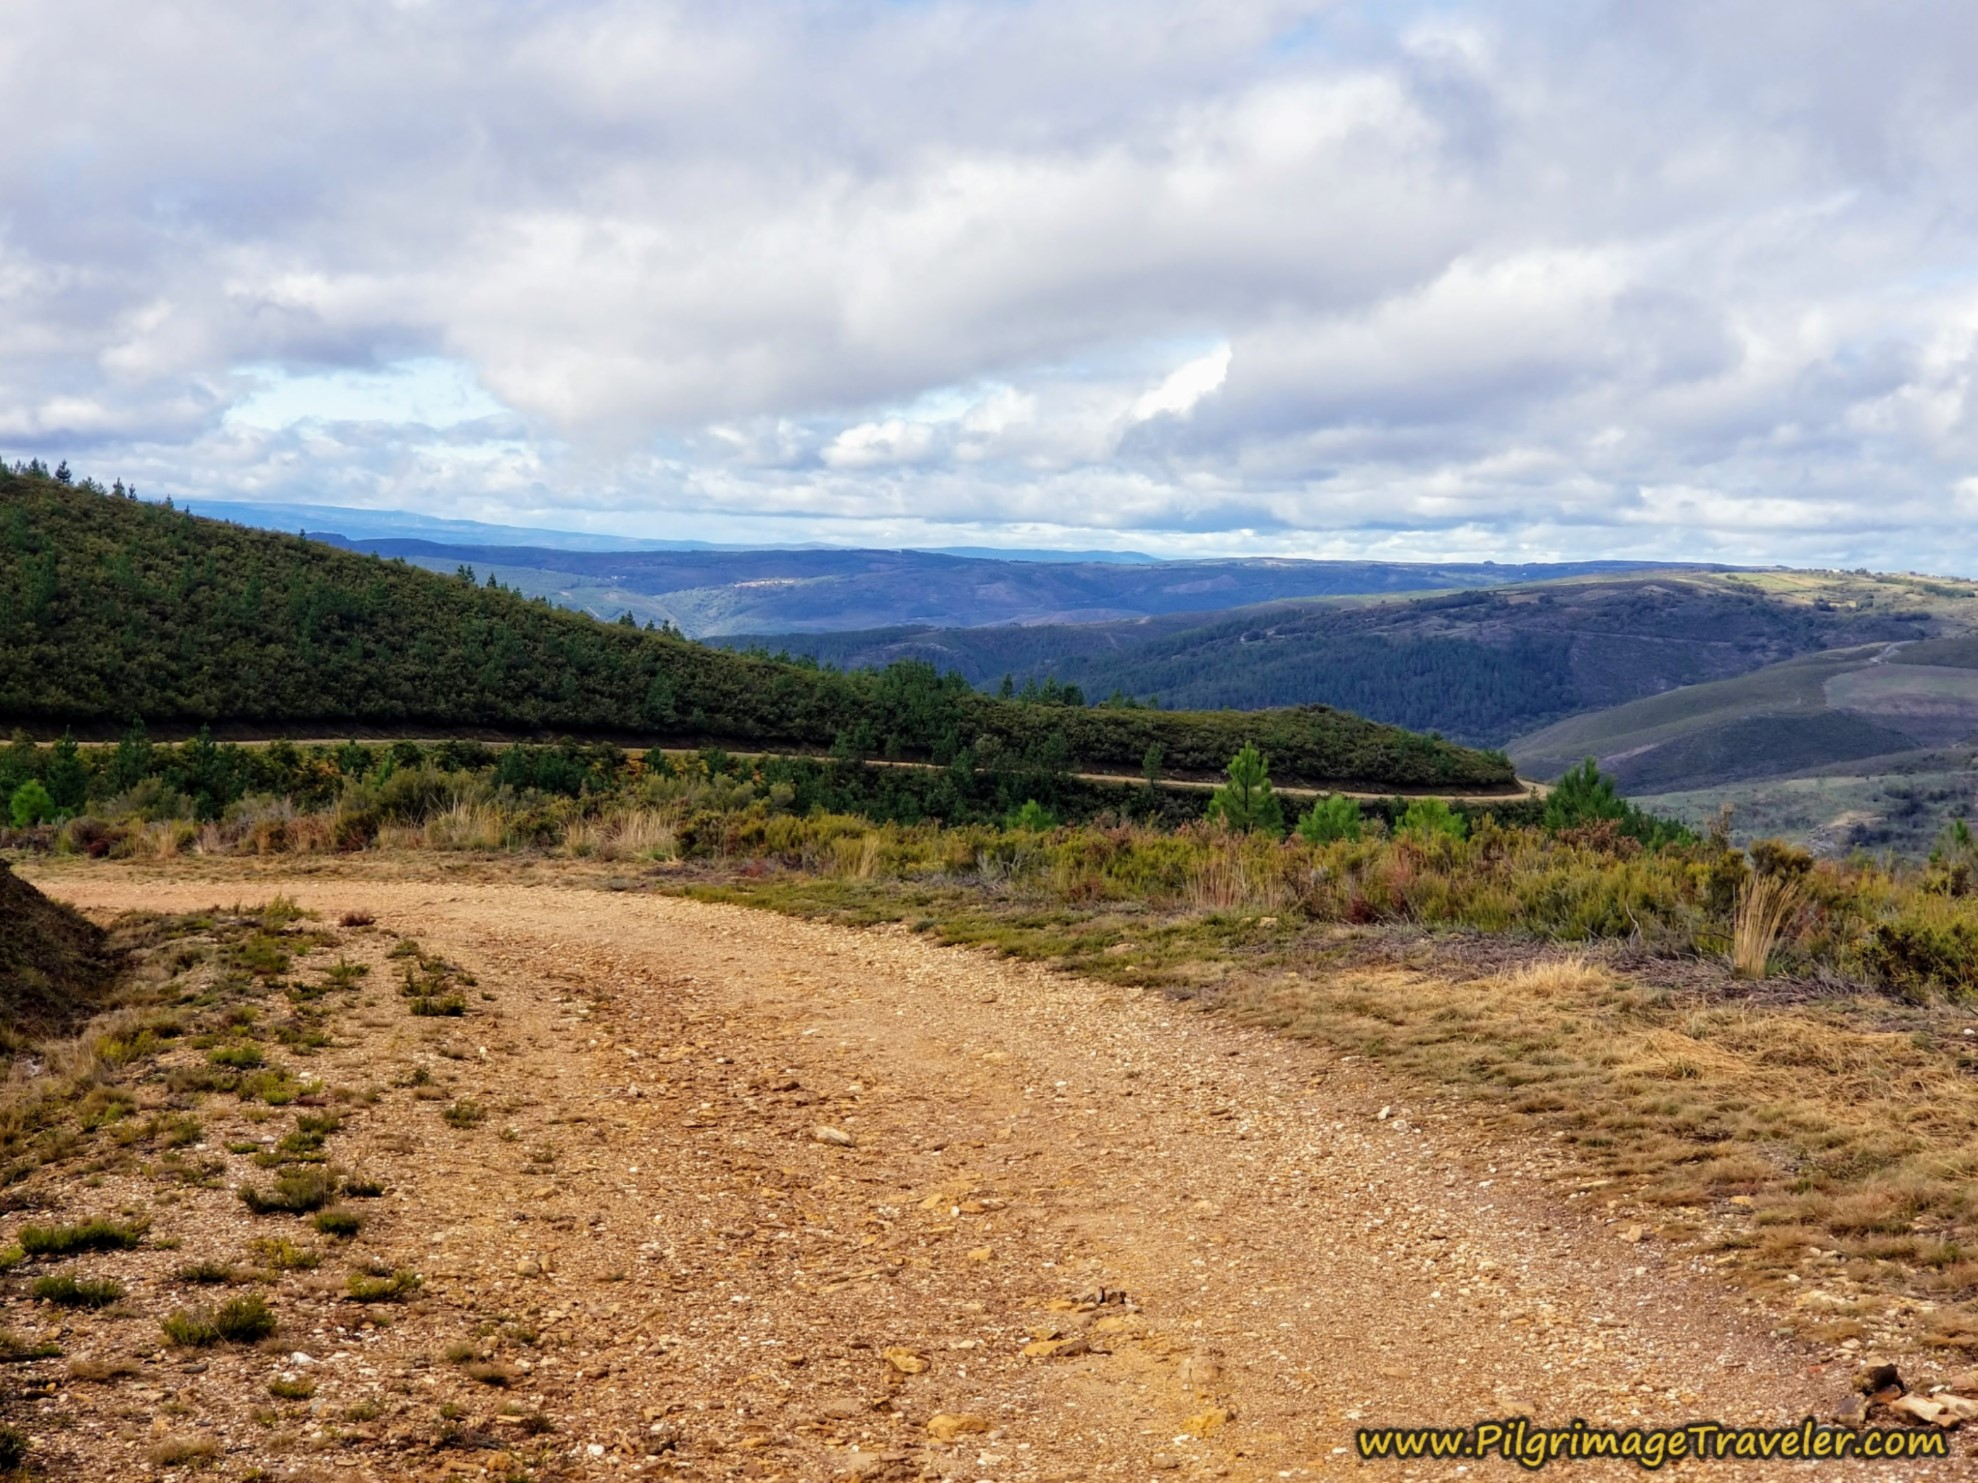 Long Road Ahead on the Camino Sanabrés from to A Venda da Capela to A Laza